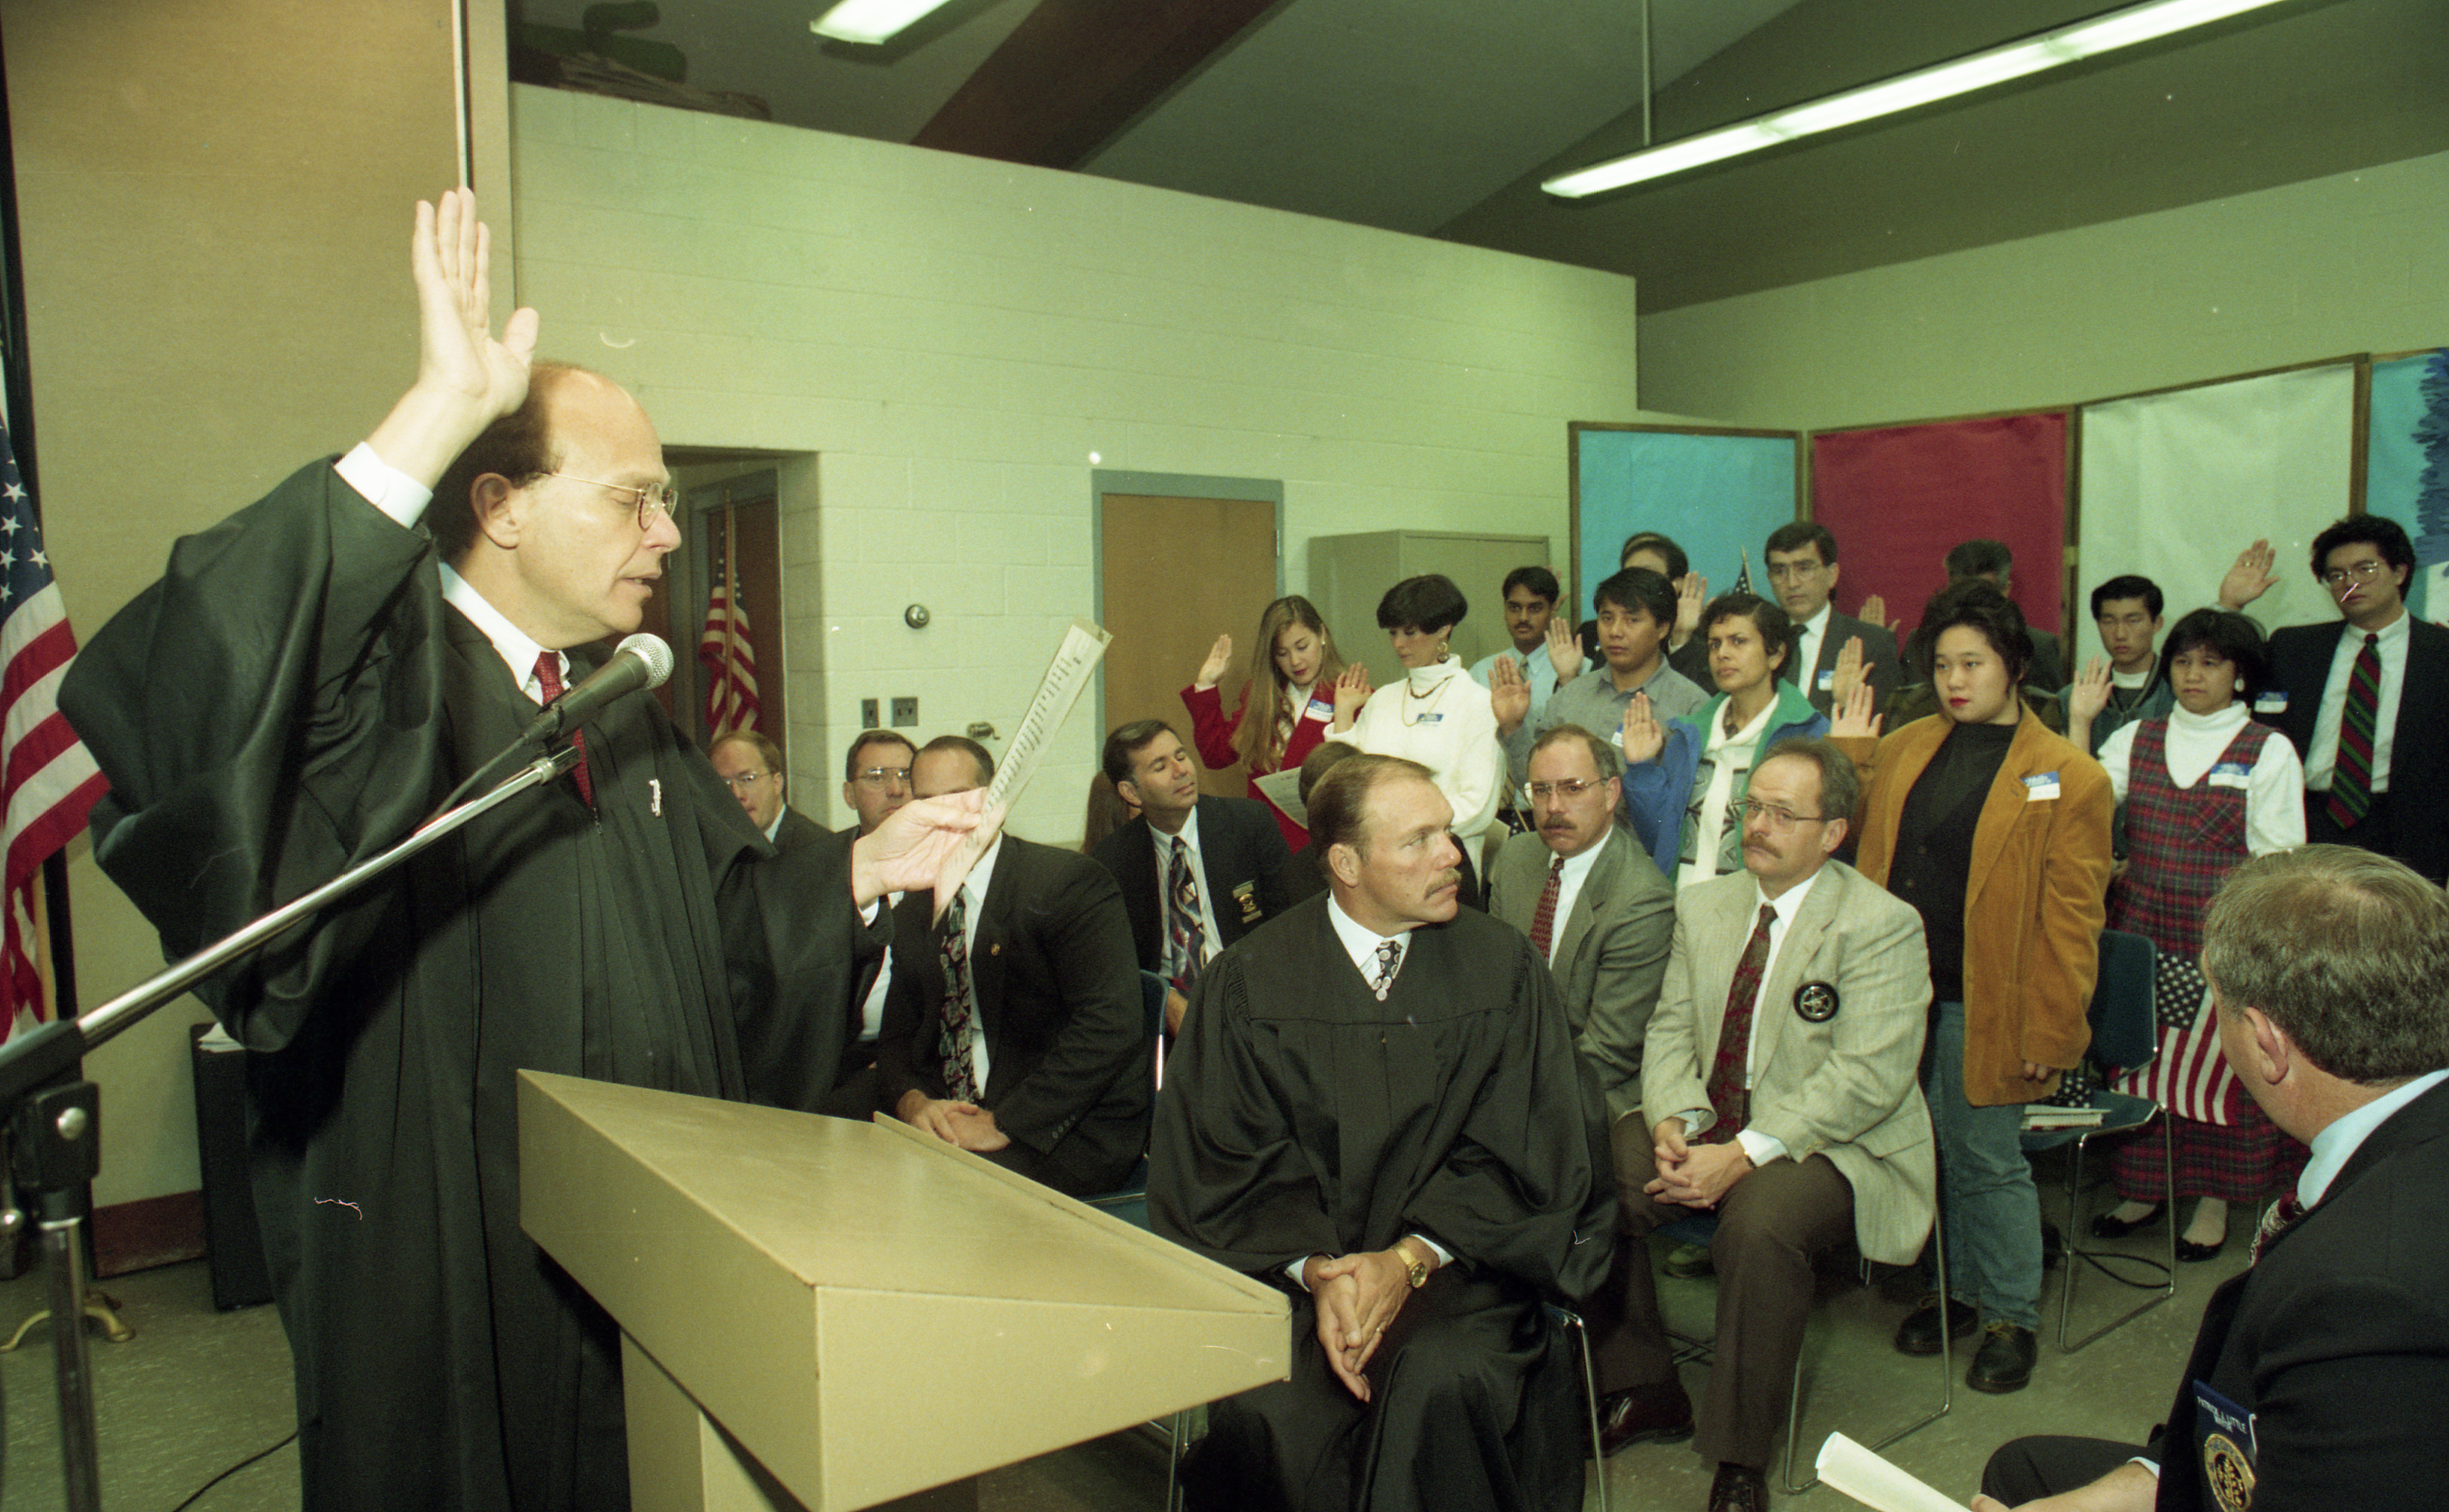 U.S. District Court Judge Friedman Administers Oath at U.S. Citizenship Ceremony At Houghton Elementary School In Saline, October 1993 image